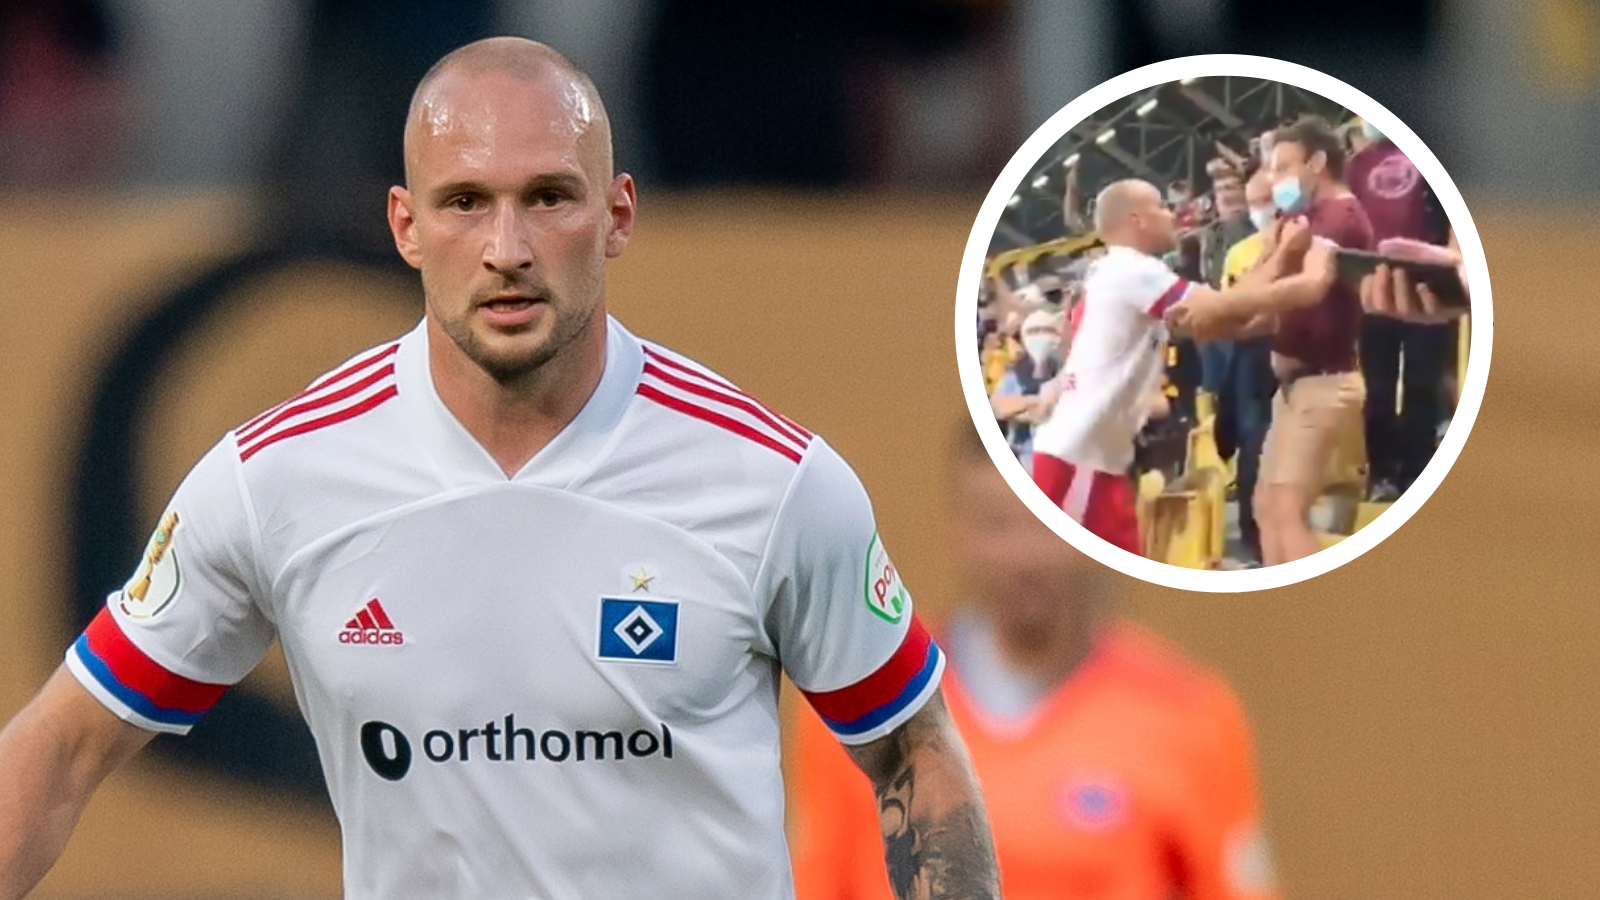 Hamburg defender Toni Leistner involved in shocking altercation with Dynamo Dresden fan